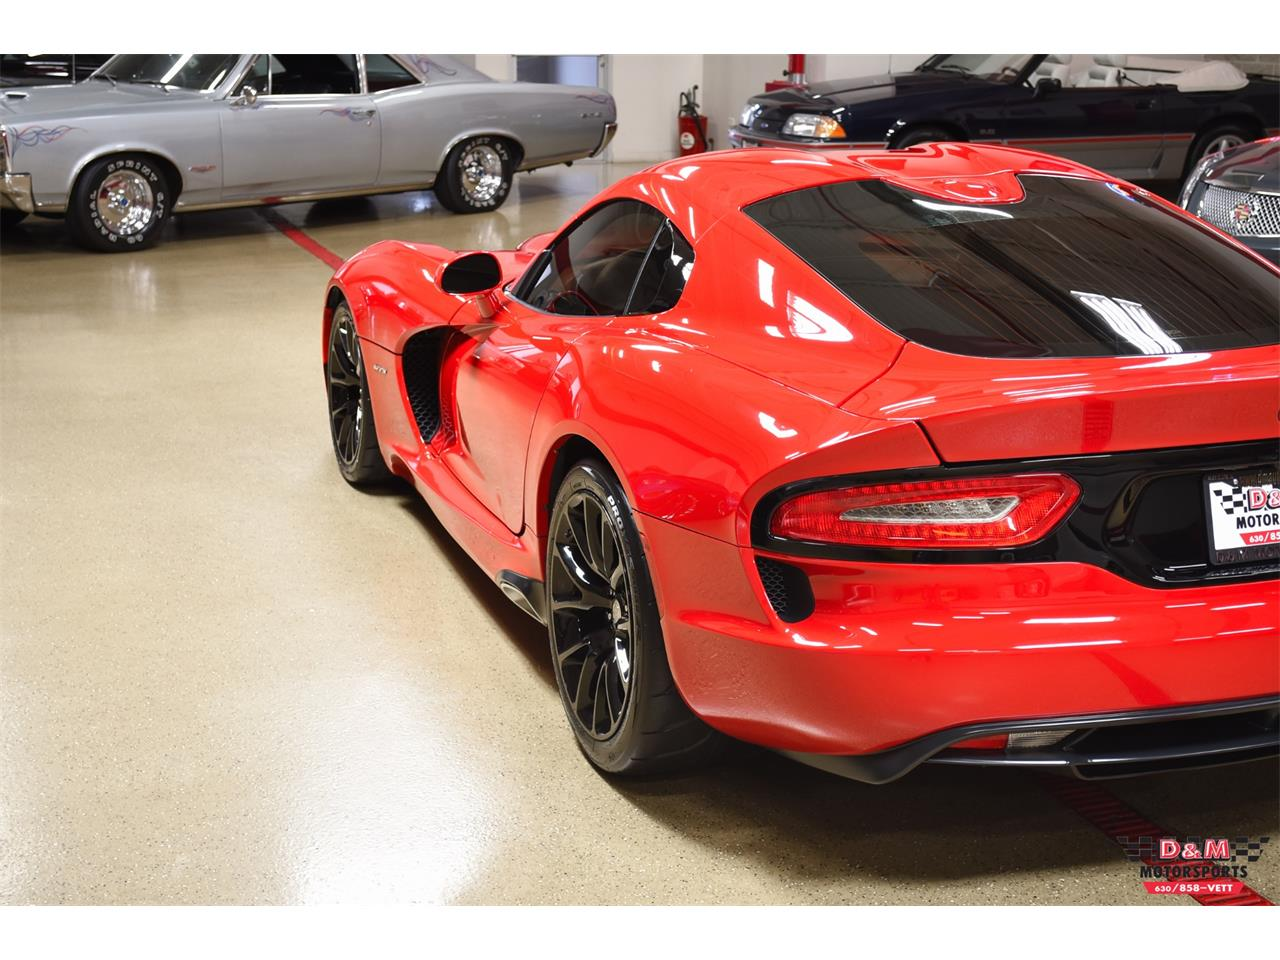 Large Picture of '13 Dodge Viper Offered by D & M Motorsports - PTPC